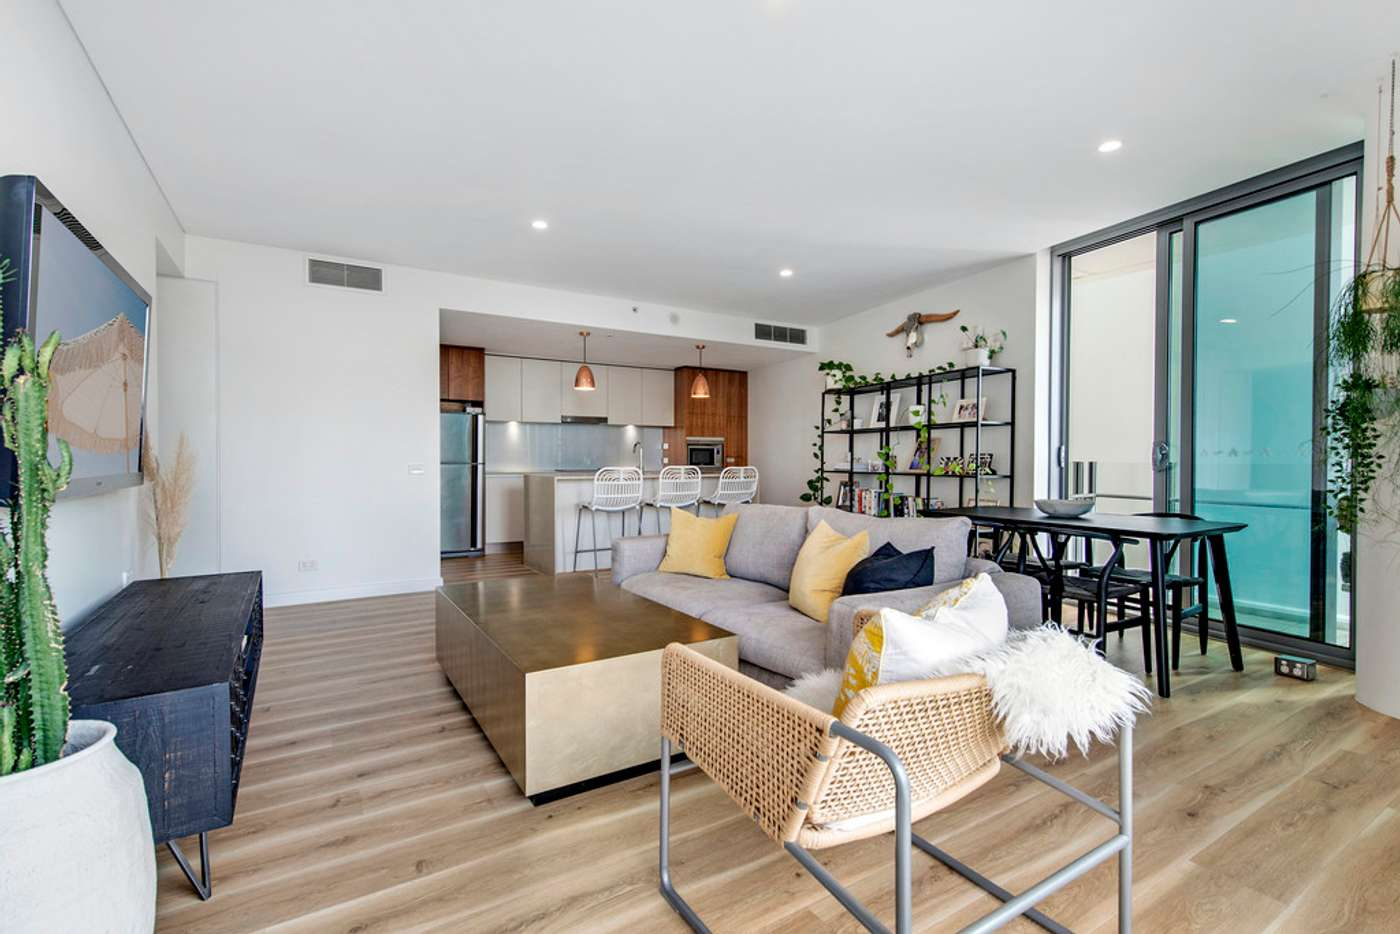 Fifth view of Homely apartment listing, 302/3018 Surfers Paradise Boulevard, Surfers Paradise QLD 4217